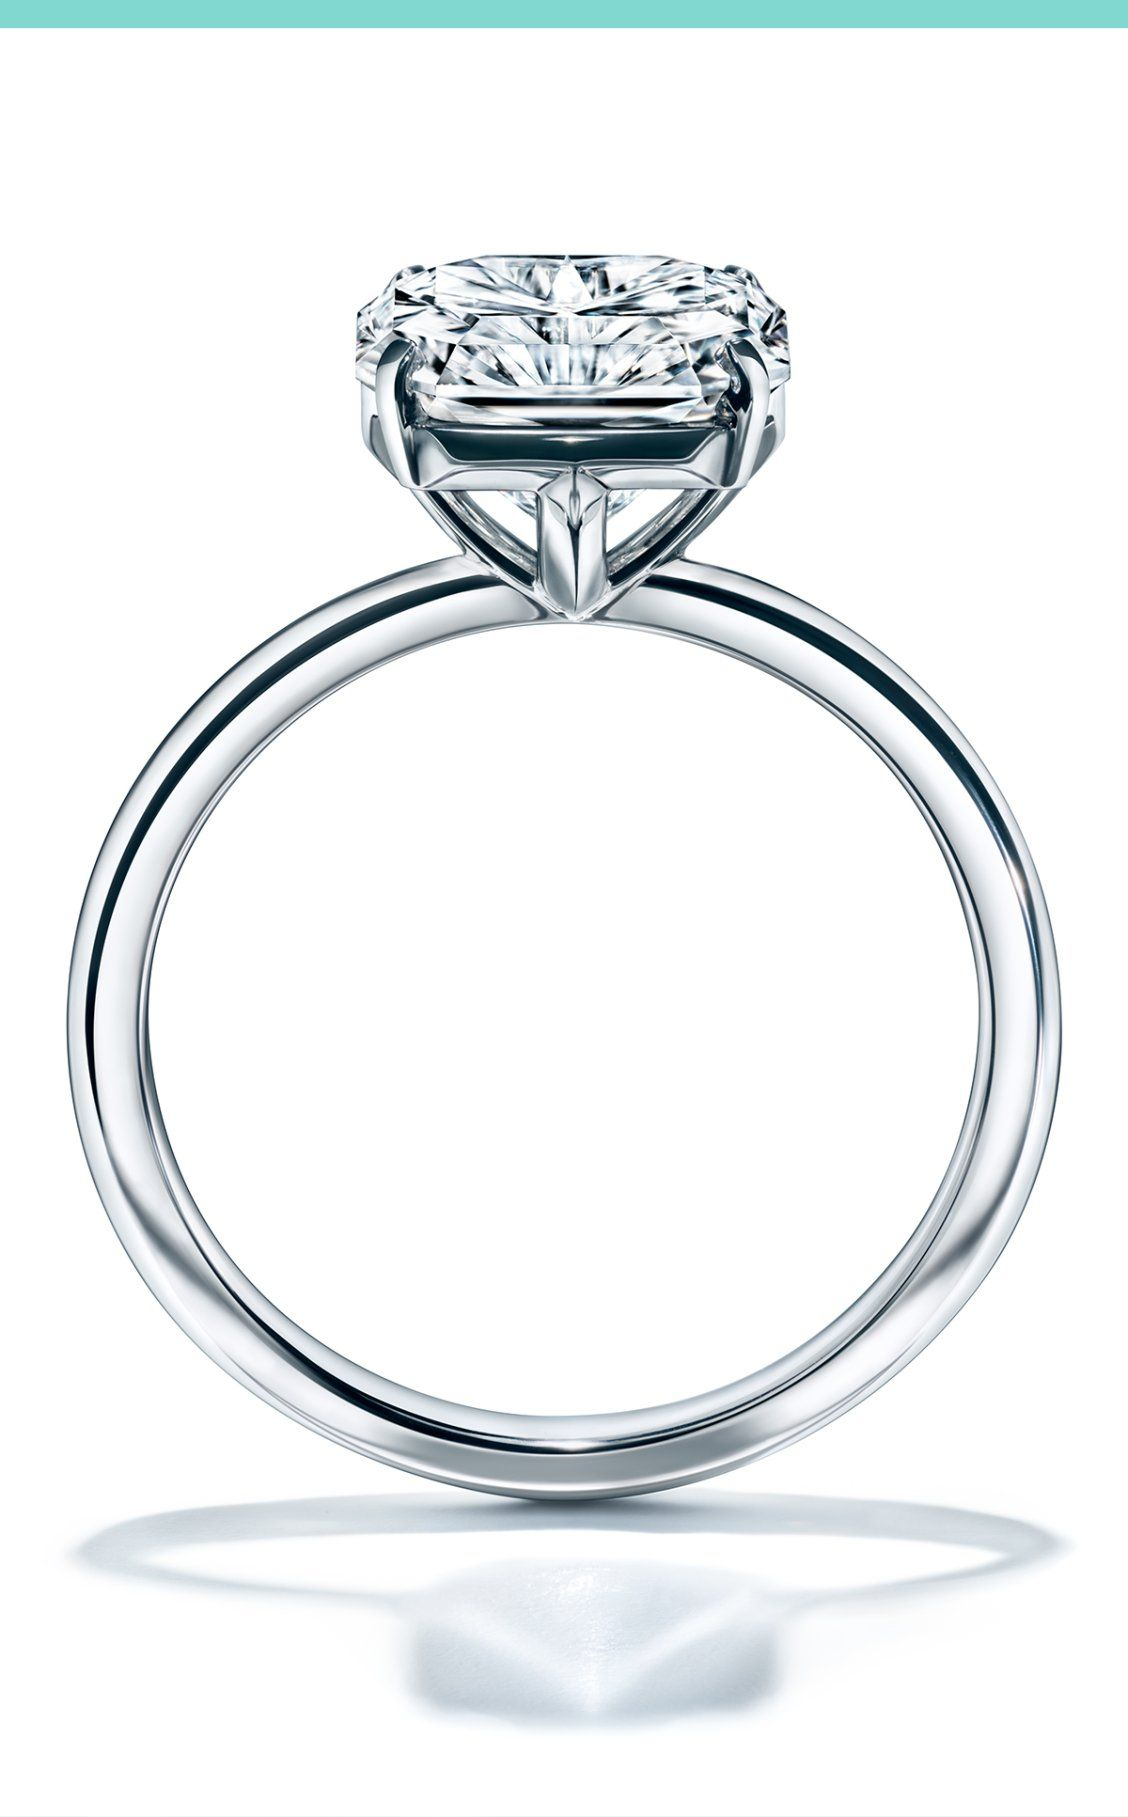 ce2656f8a Architectural and discreetly hallmarked with a T-shaped detail in the  setting, the Tiffany True engagement ring is an embodiment of all that  Tiffany stands ...